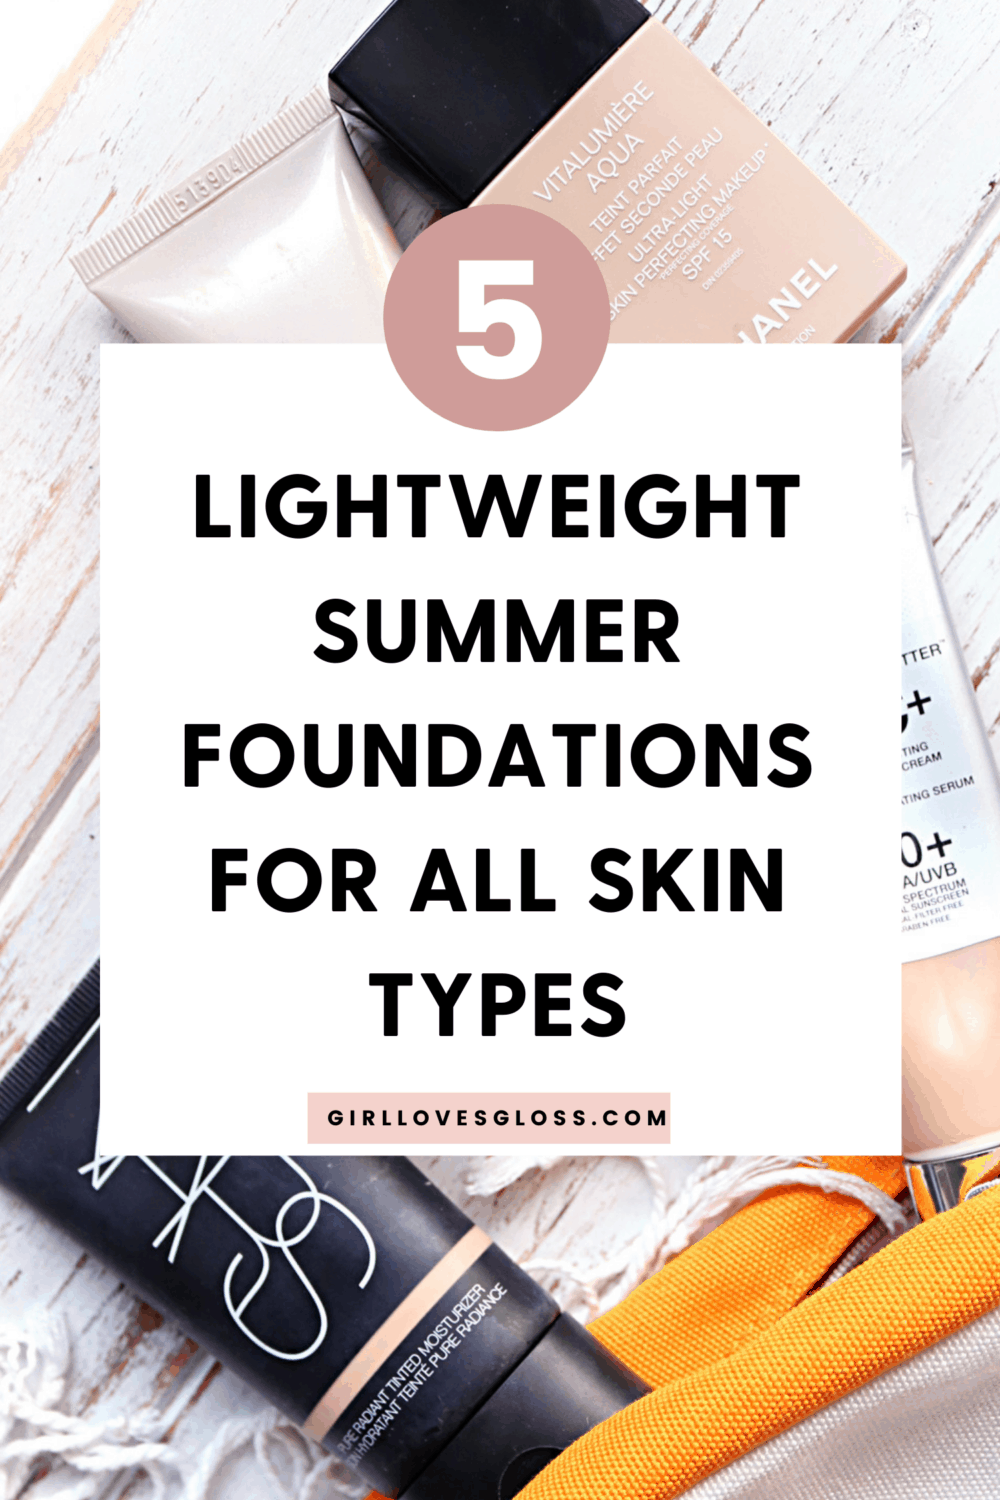 5 Lightweight Summer Foundations for any skin type